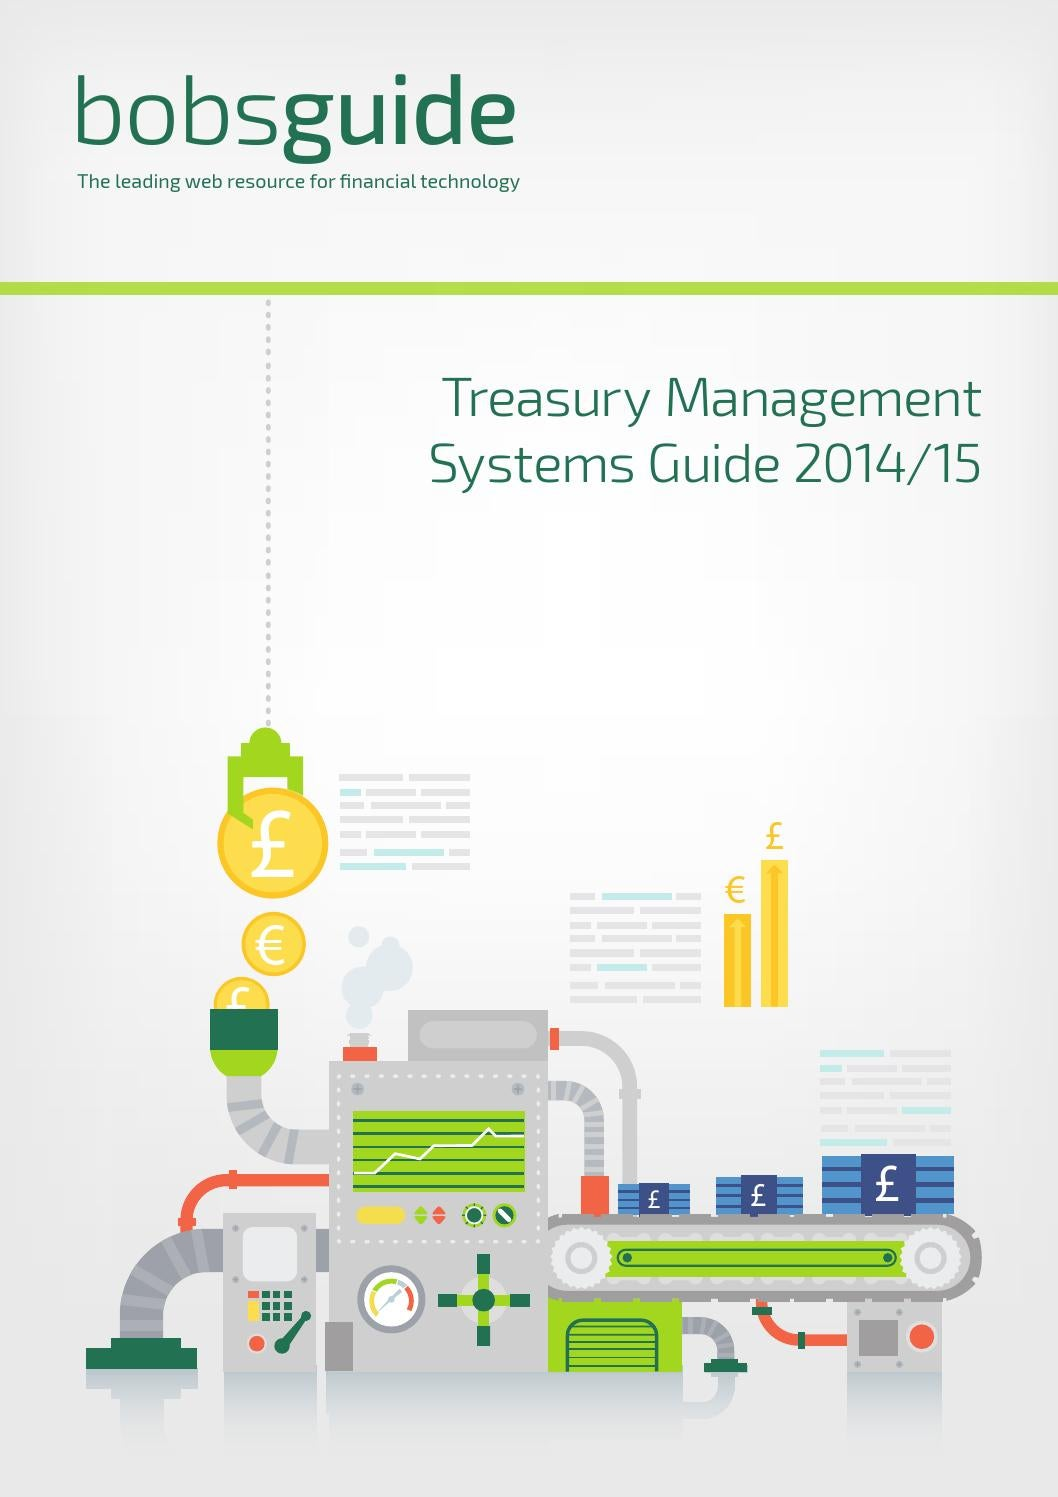 Technology Management Image: Treasury Management Systems Guide 2014/2015 By Bobsguide